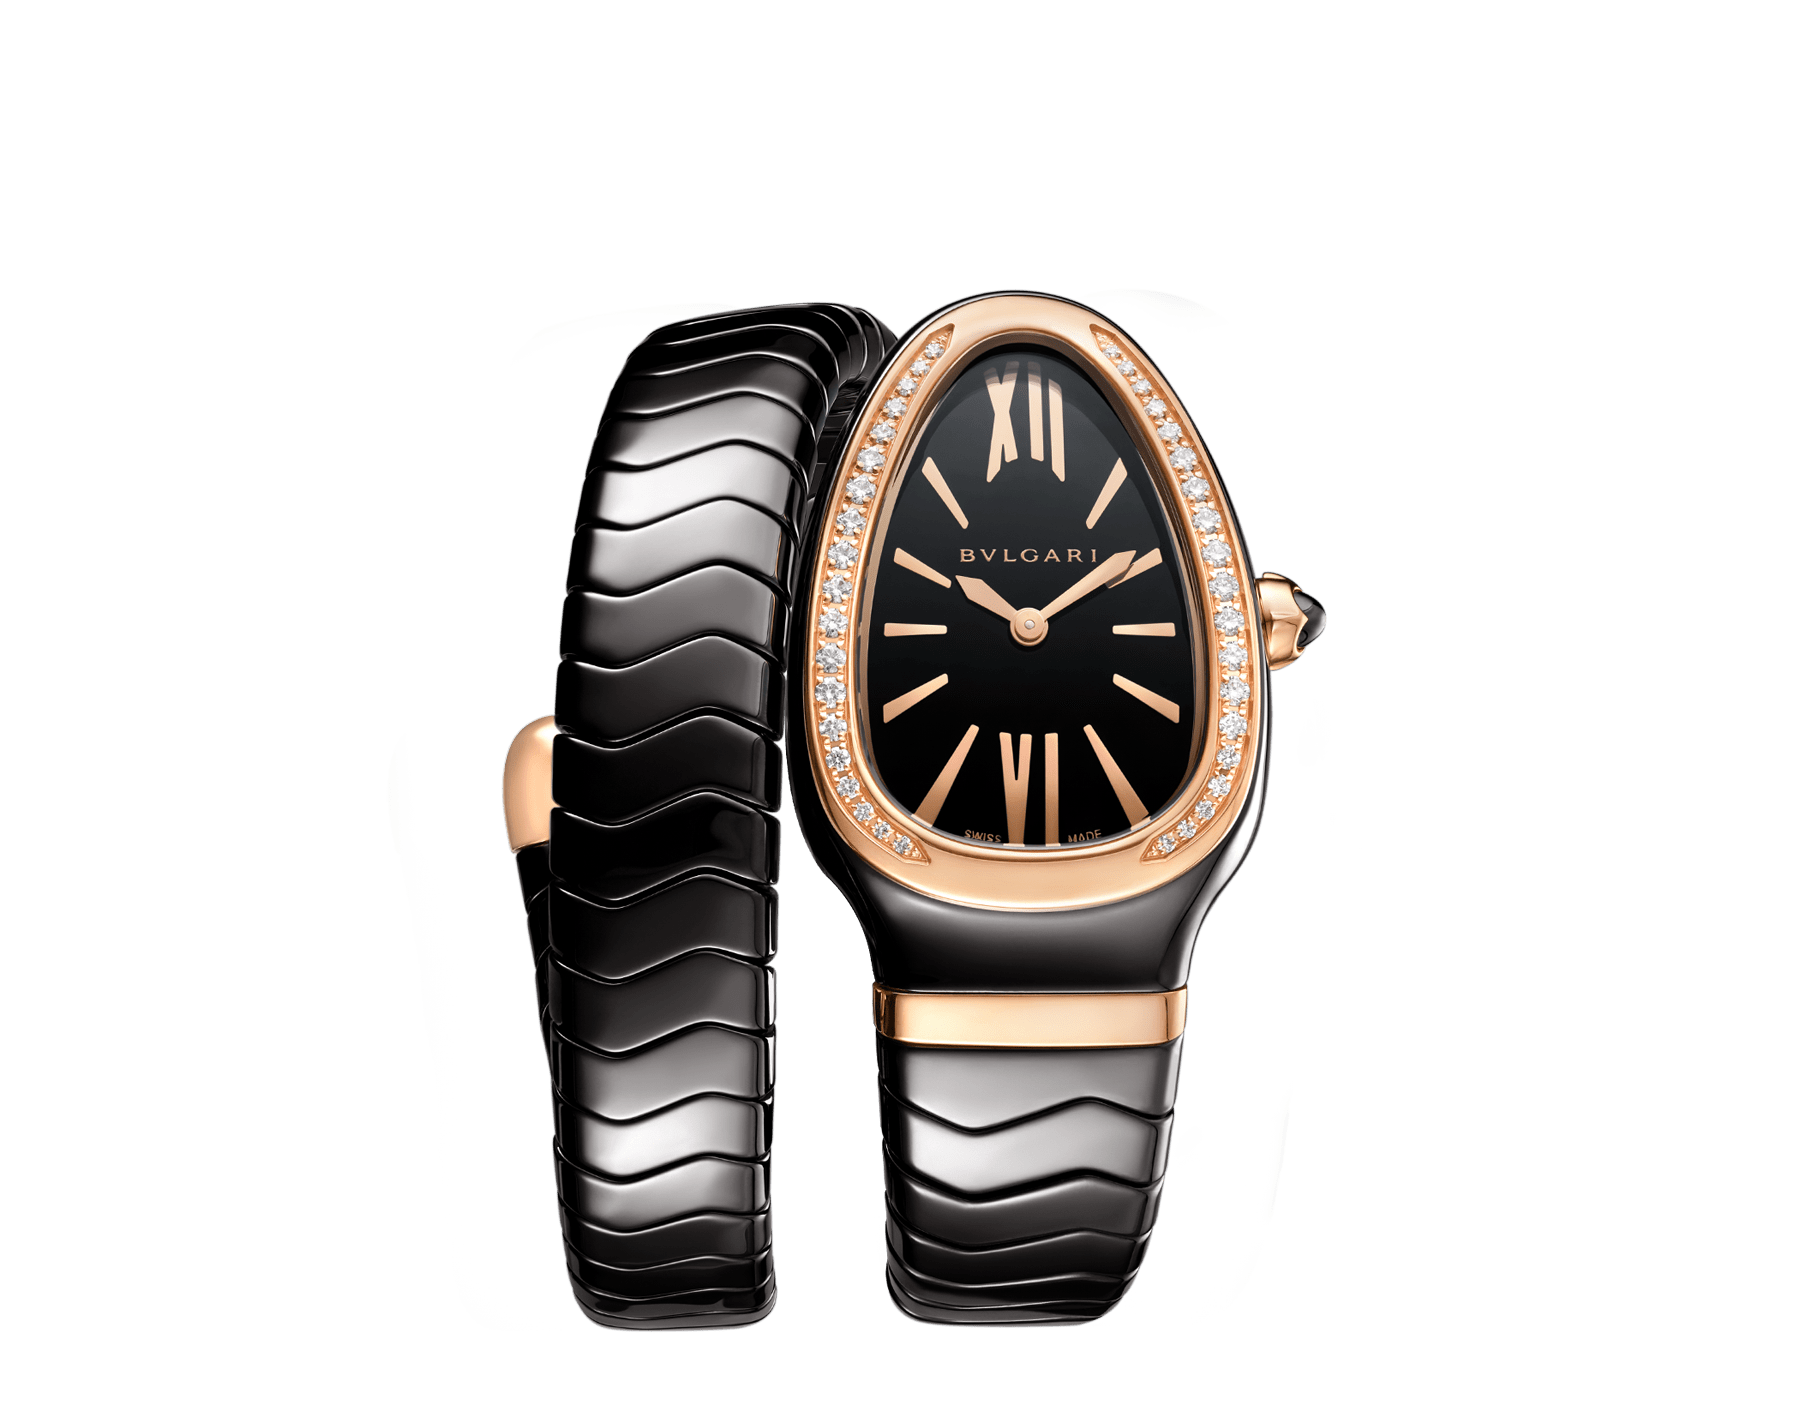 Serpenti Spiga single spiral watch with black ceramic case, 18 kt rose gold bezel set with brilliant cut diamonds, black lacquered dial, black ceramic bracelet with 18 kt rose gold elements. 102532 image 1